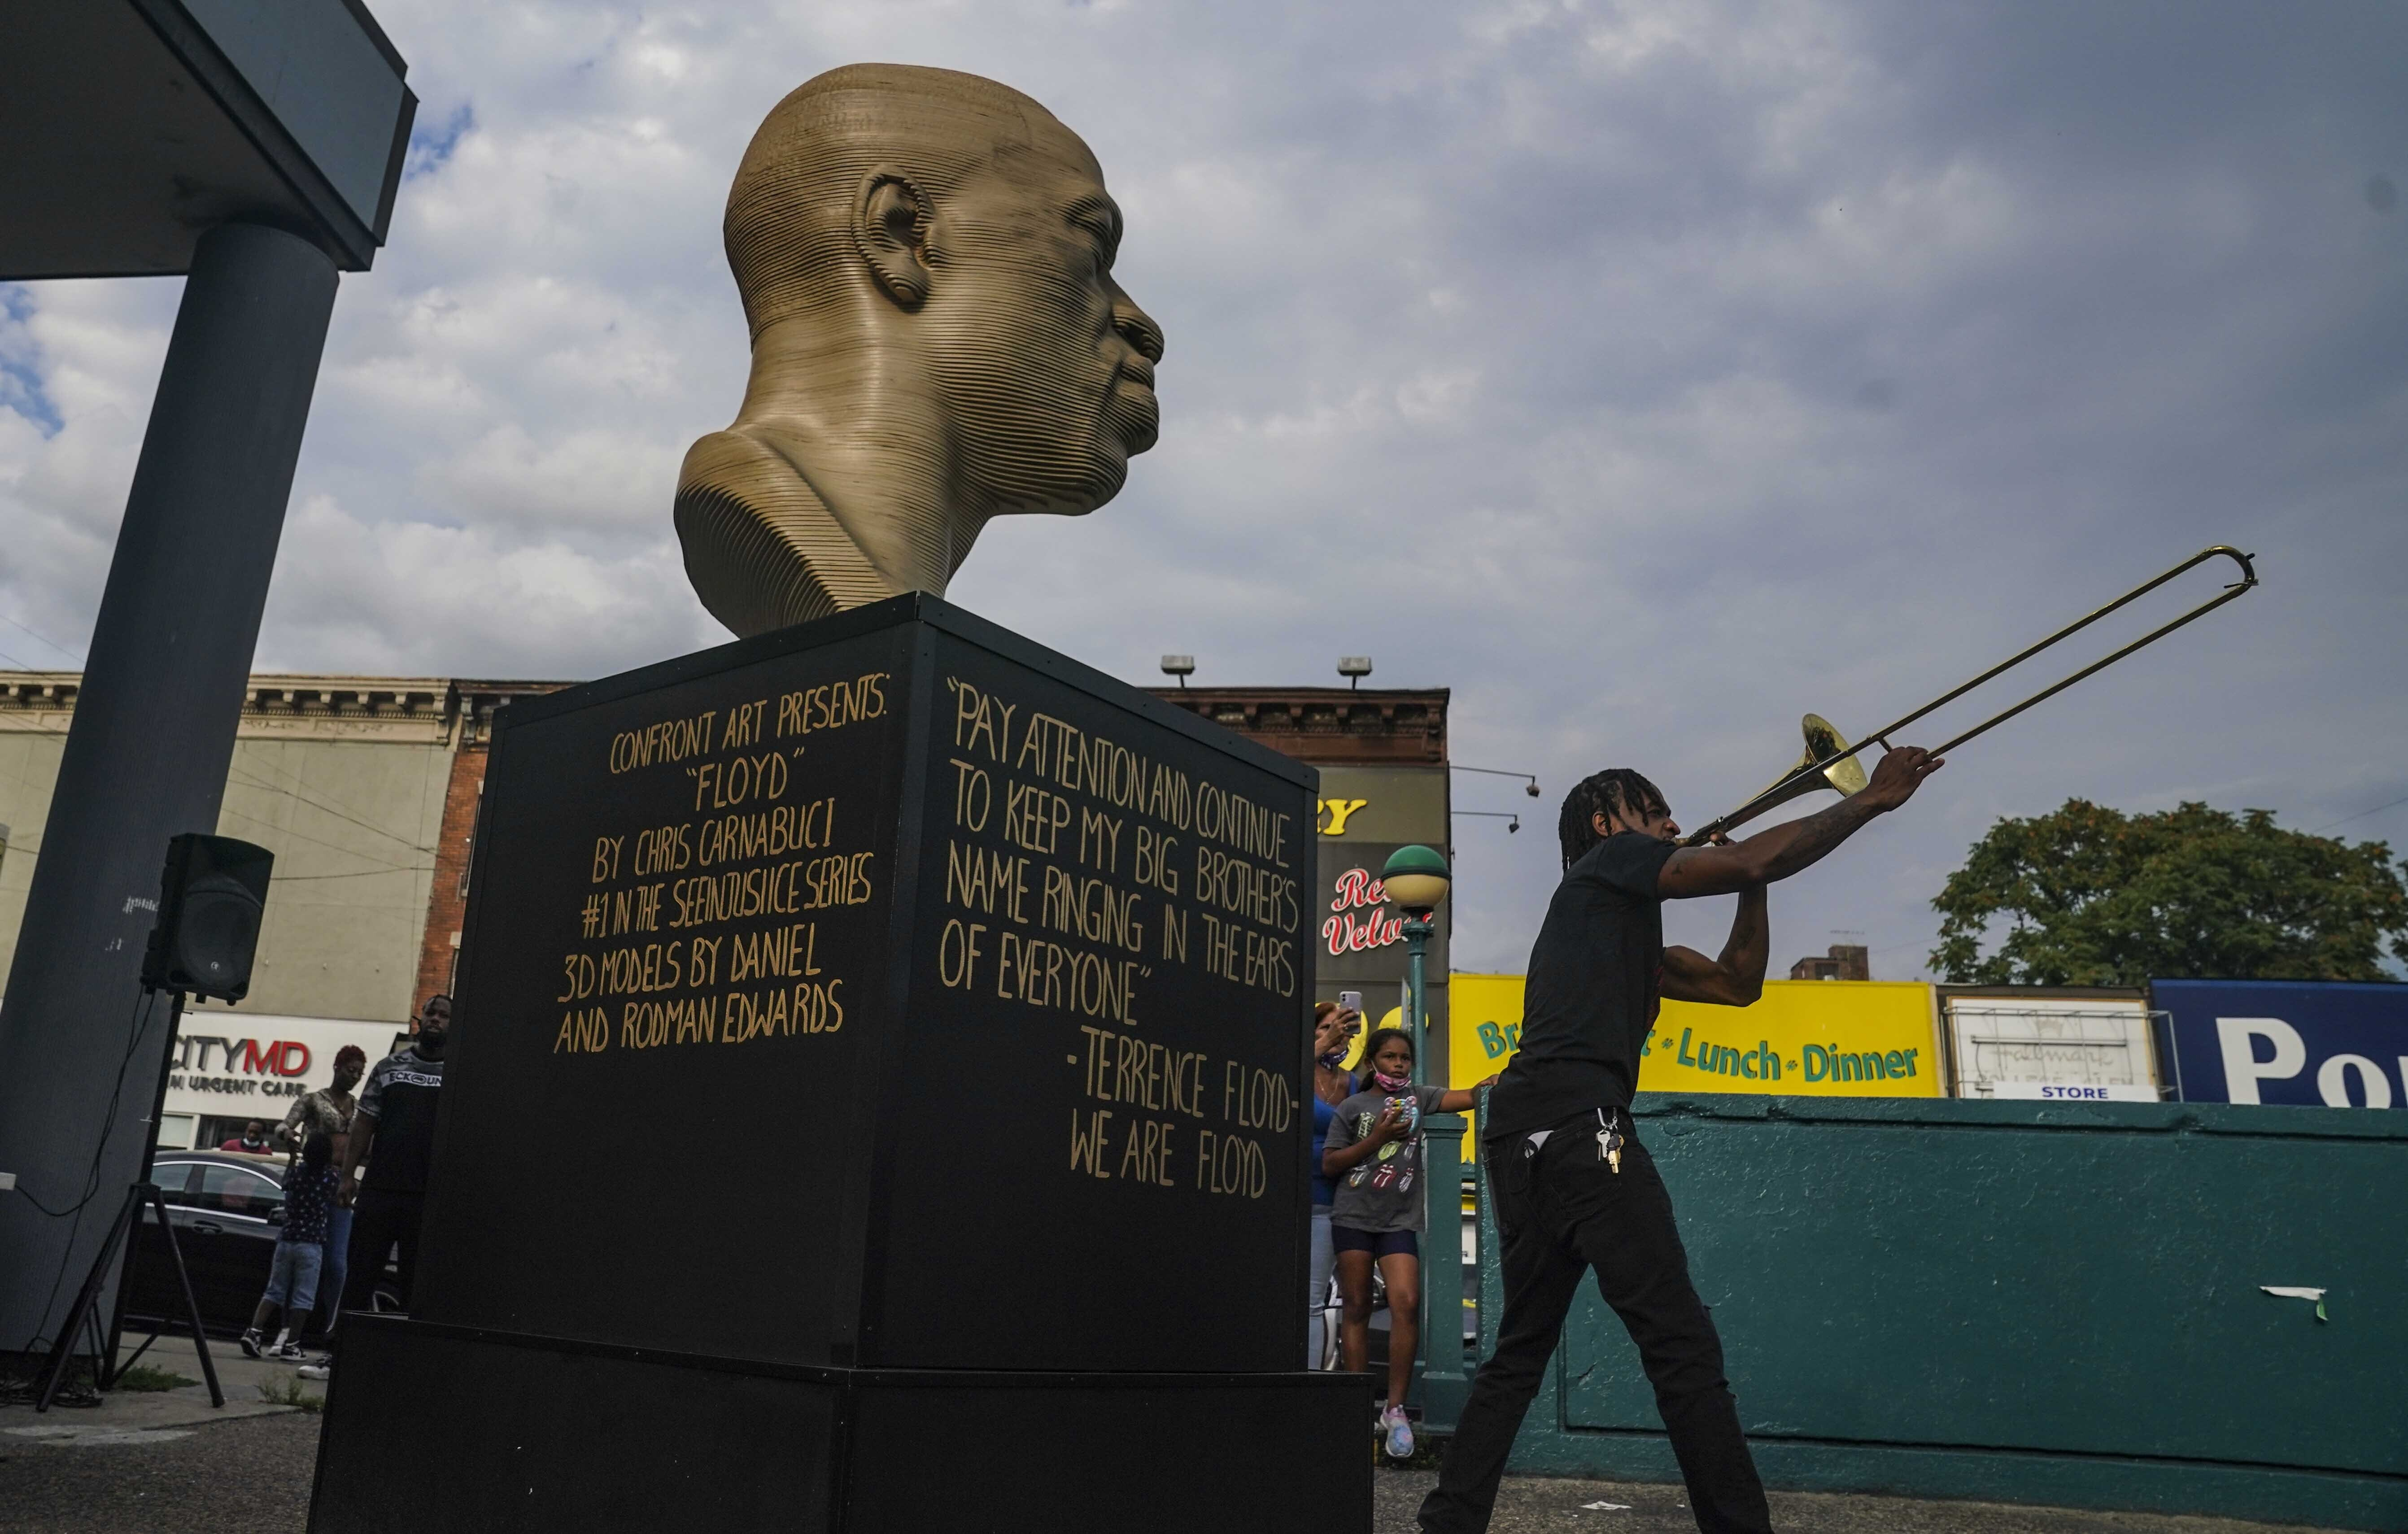 Jonte  Jonoel  Lancaster plays trombone during a celebration for the refurbished George Floyd statue, after it was vandalized following its Juneteenth installation in the Flatbush section of Brooklyn borough of New York, on July 22, 2021.